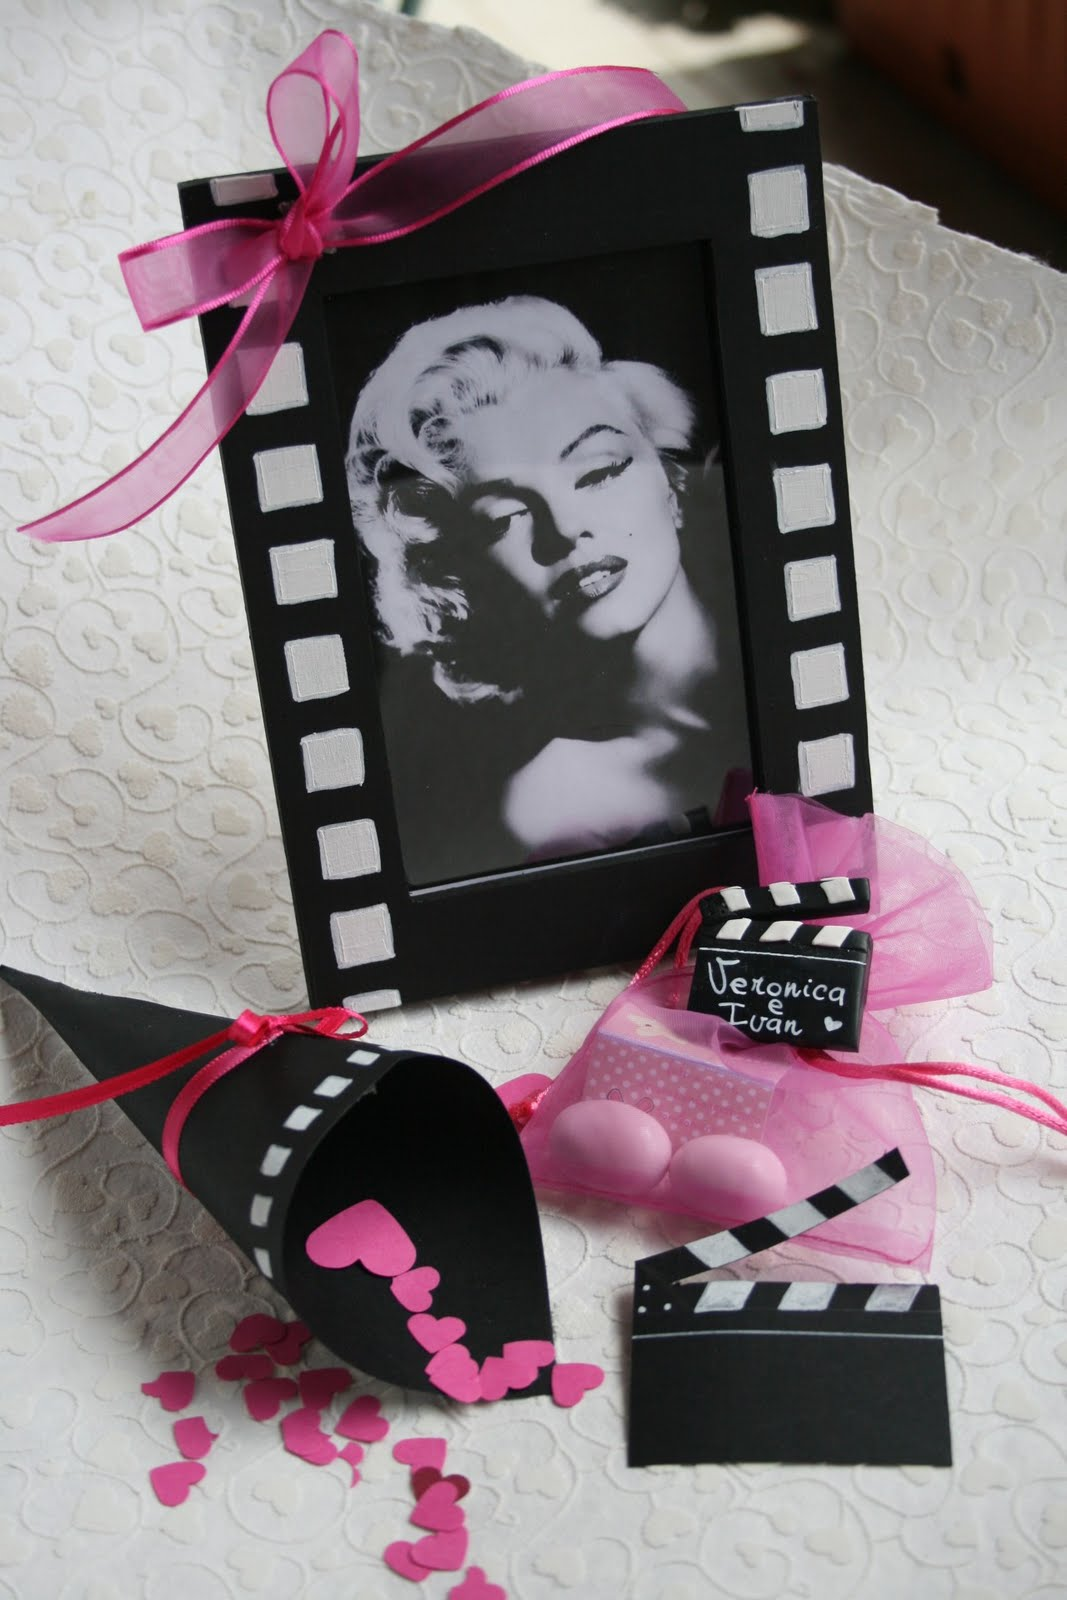 Matrimonio Tema Cinema : Pink frilly tema matrimonio cinema